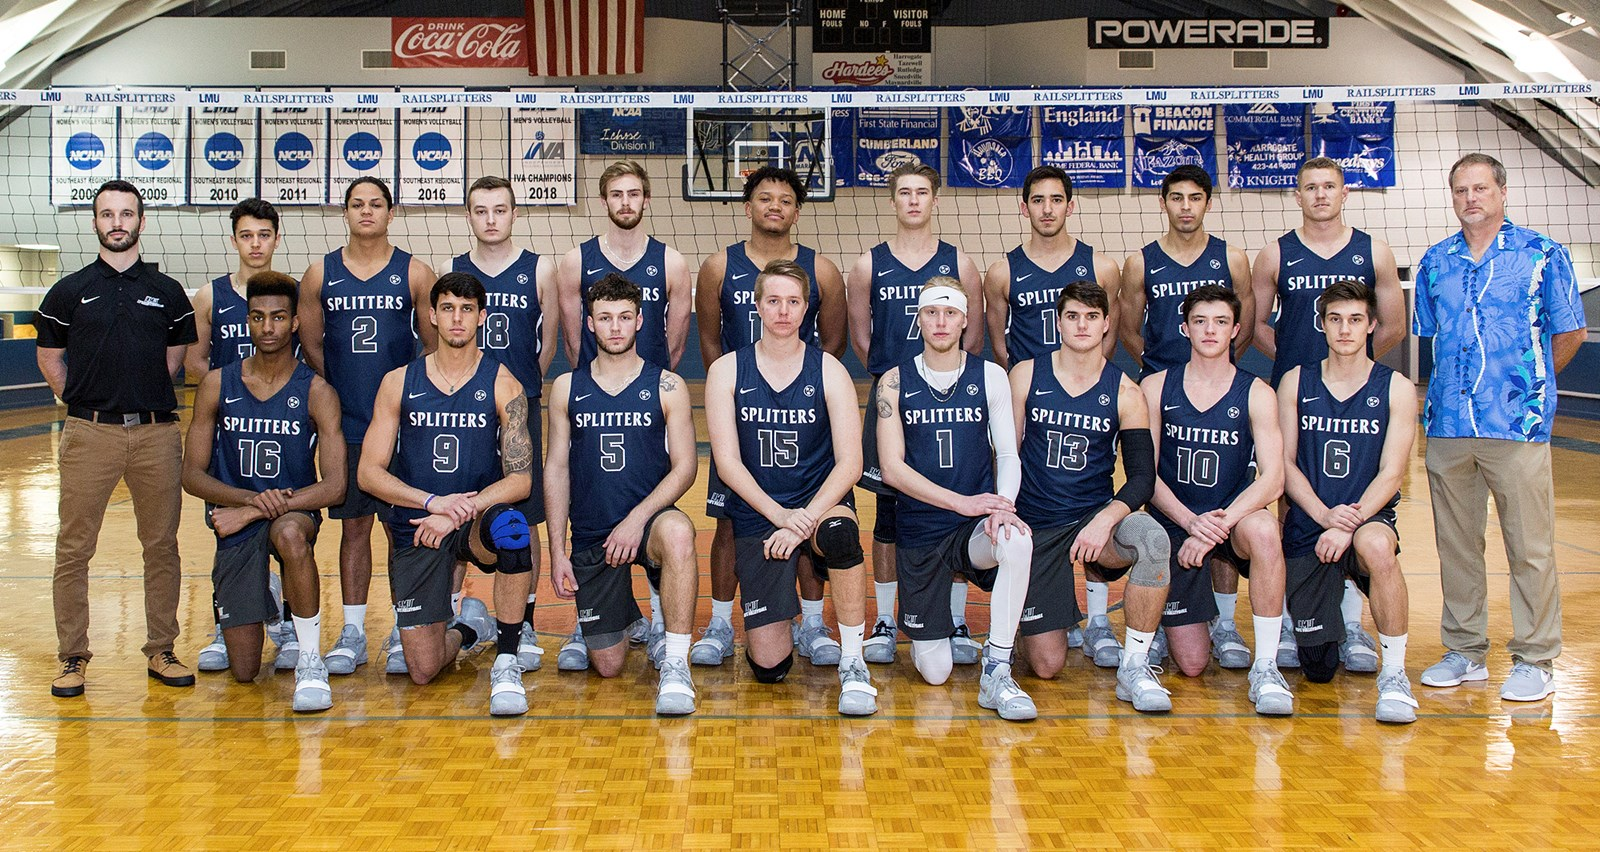 2019 Men S Volleyball Roster Lincoln Memorial University Athletics